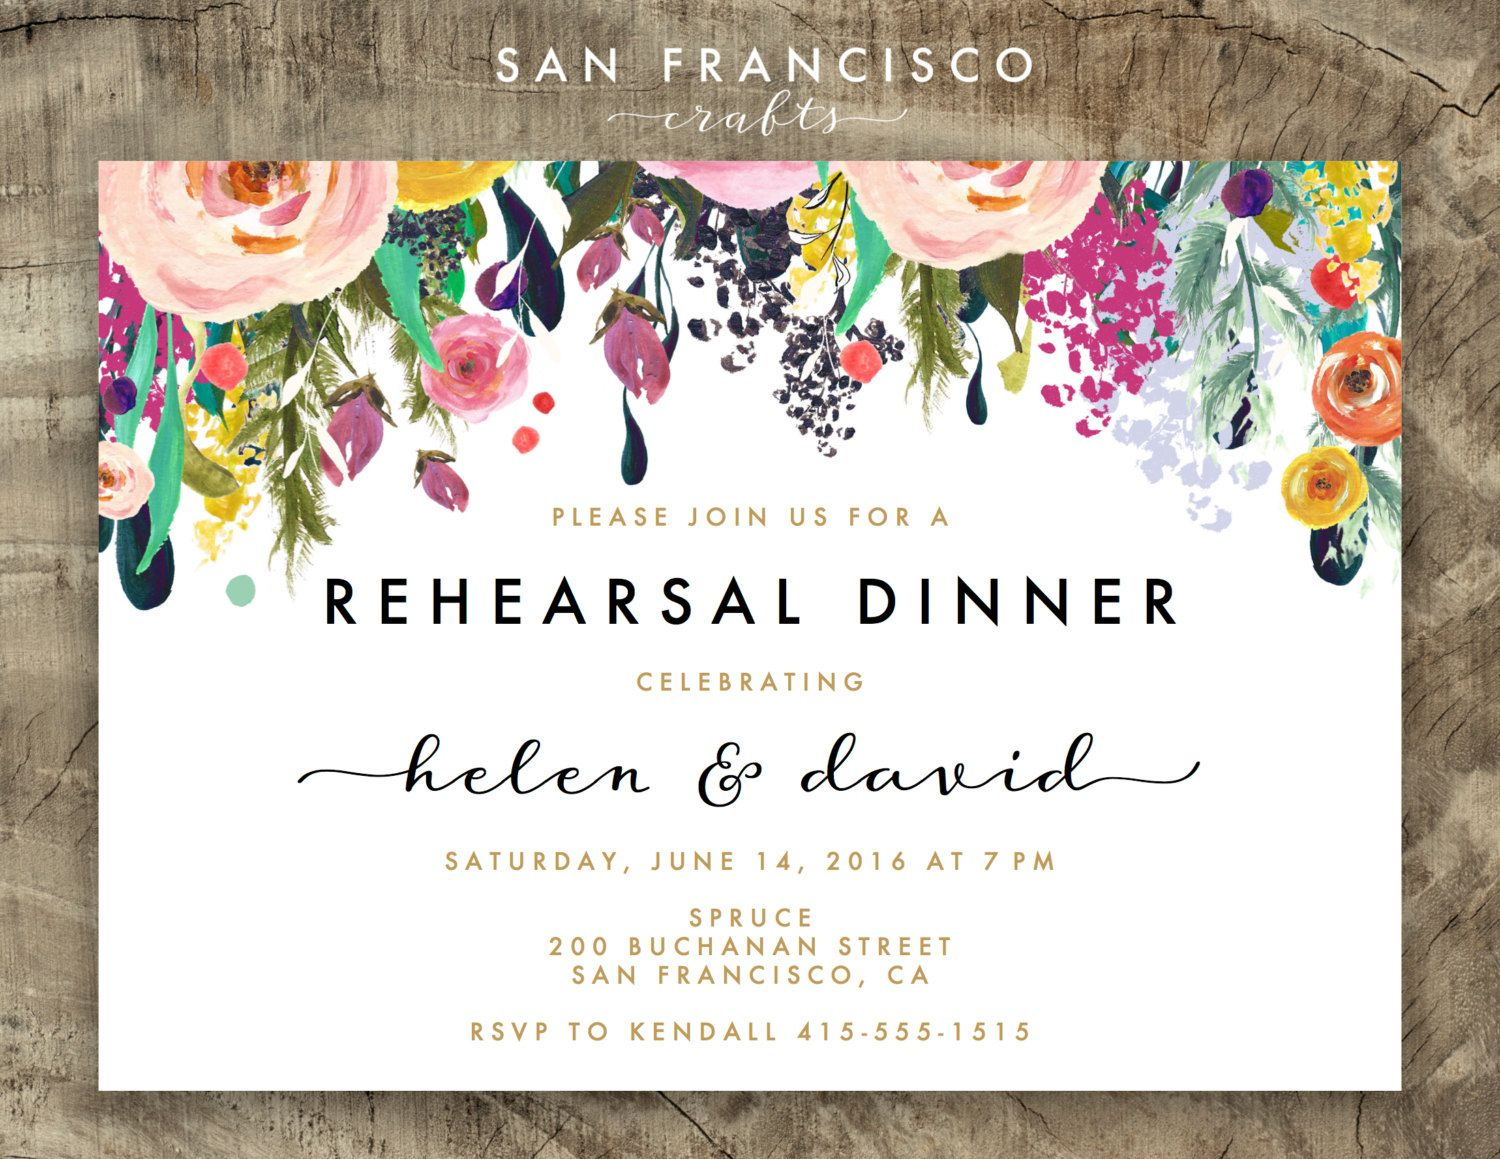 Rehearsal Dinner Invitation Engagement By Sanfranciscocrafts